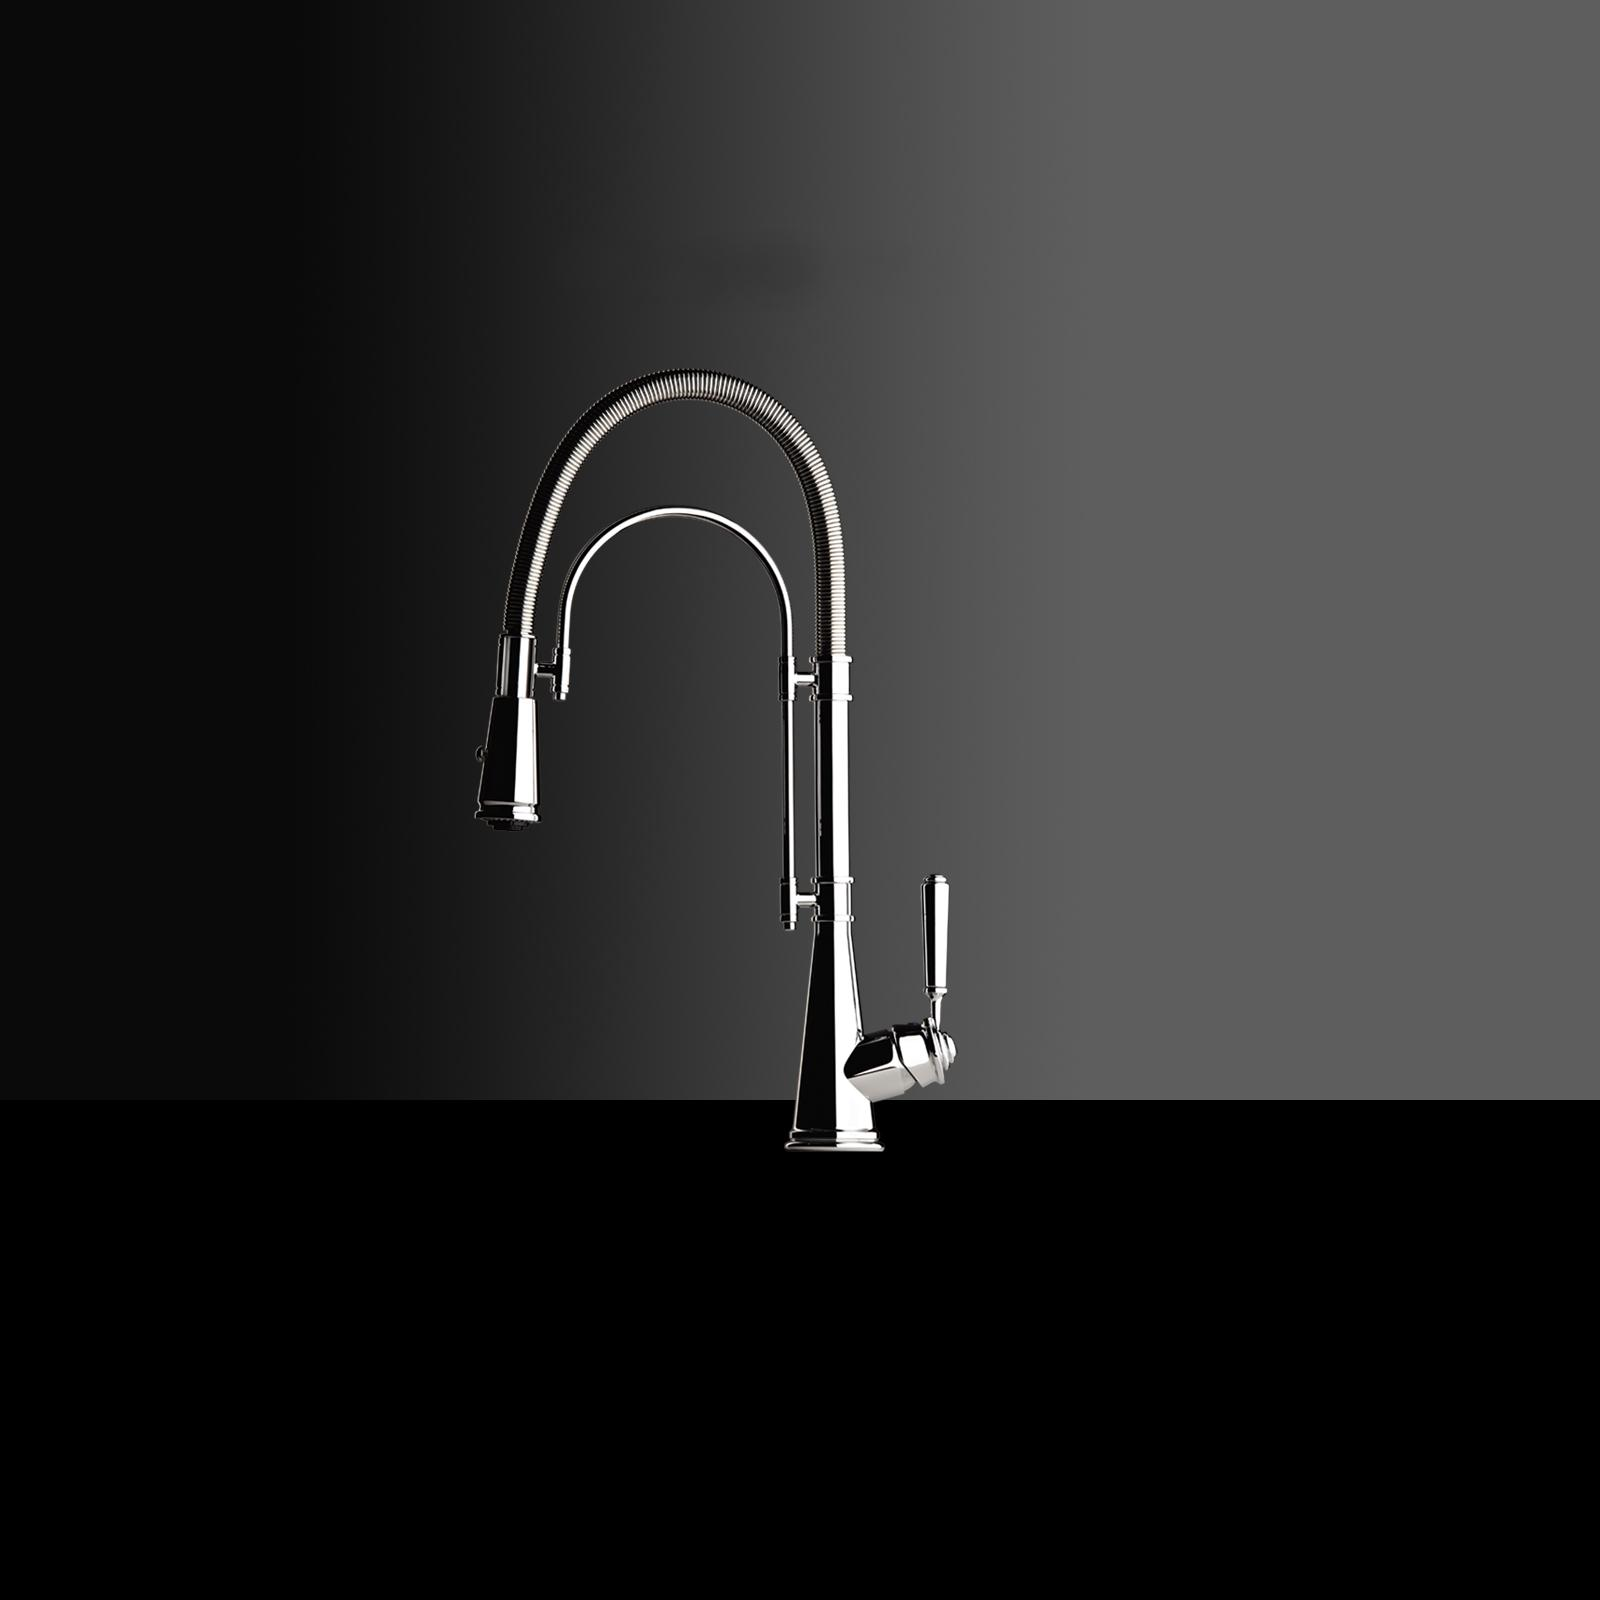 High-quality single lever tap Blaise - pull out spray - Chrome